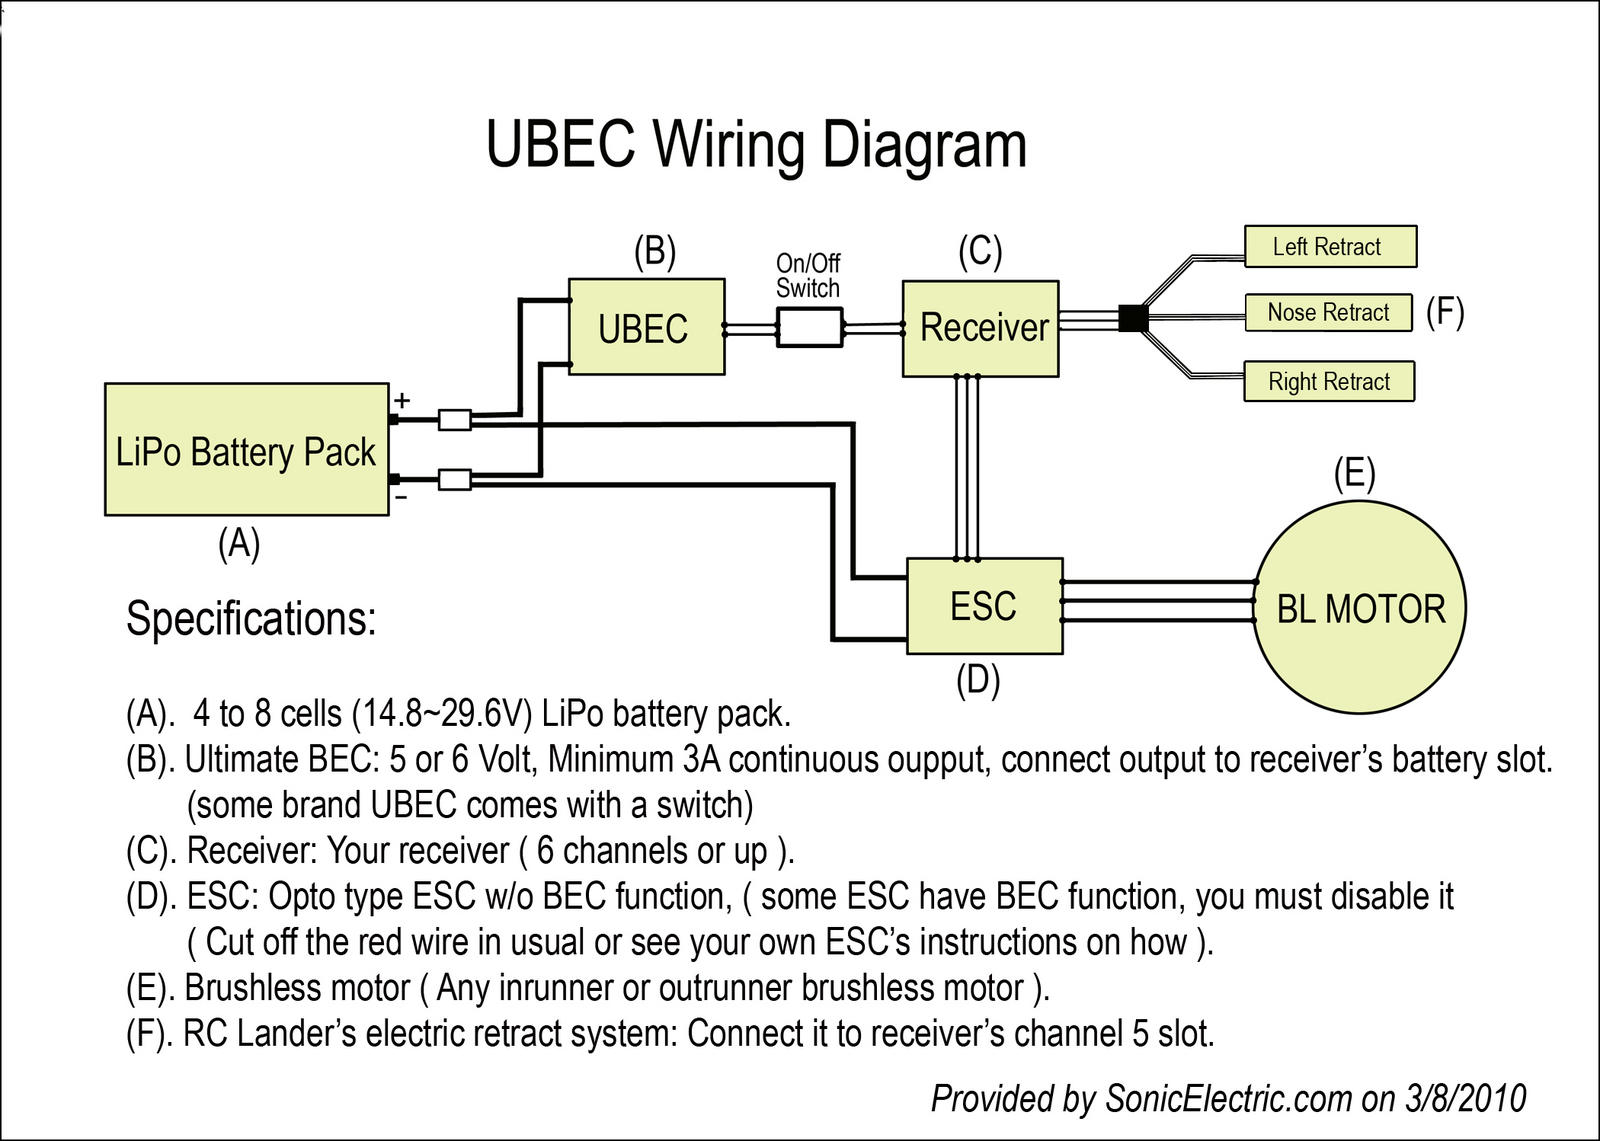 Ubec Wiring Help For Twin Trusted Wiring Diagram \u2022 Electric Motor Wiring  Diagram Bec Esc Wiring Diagram